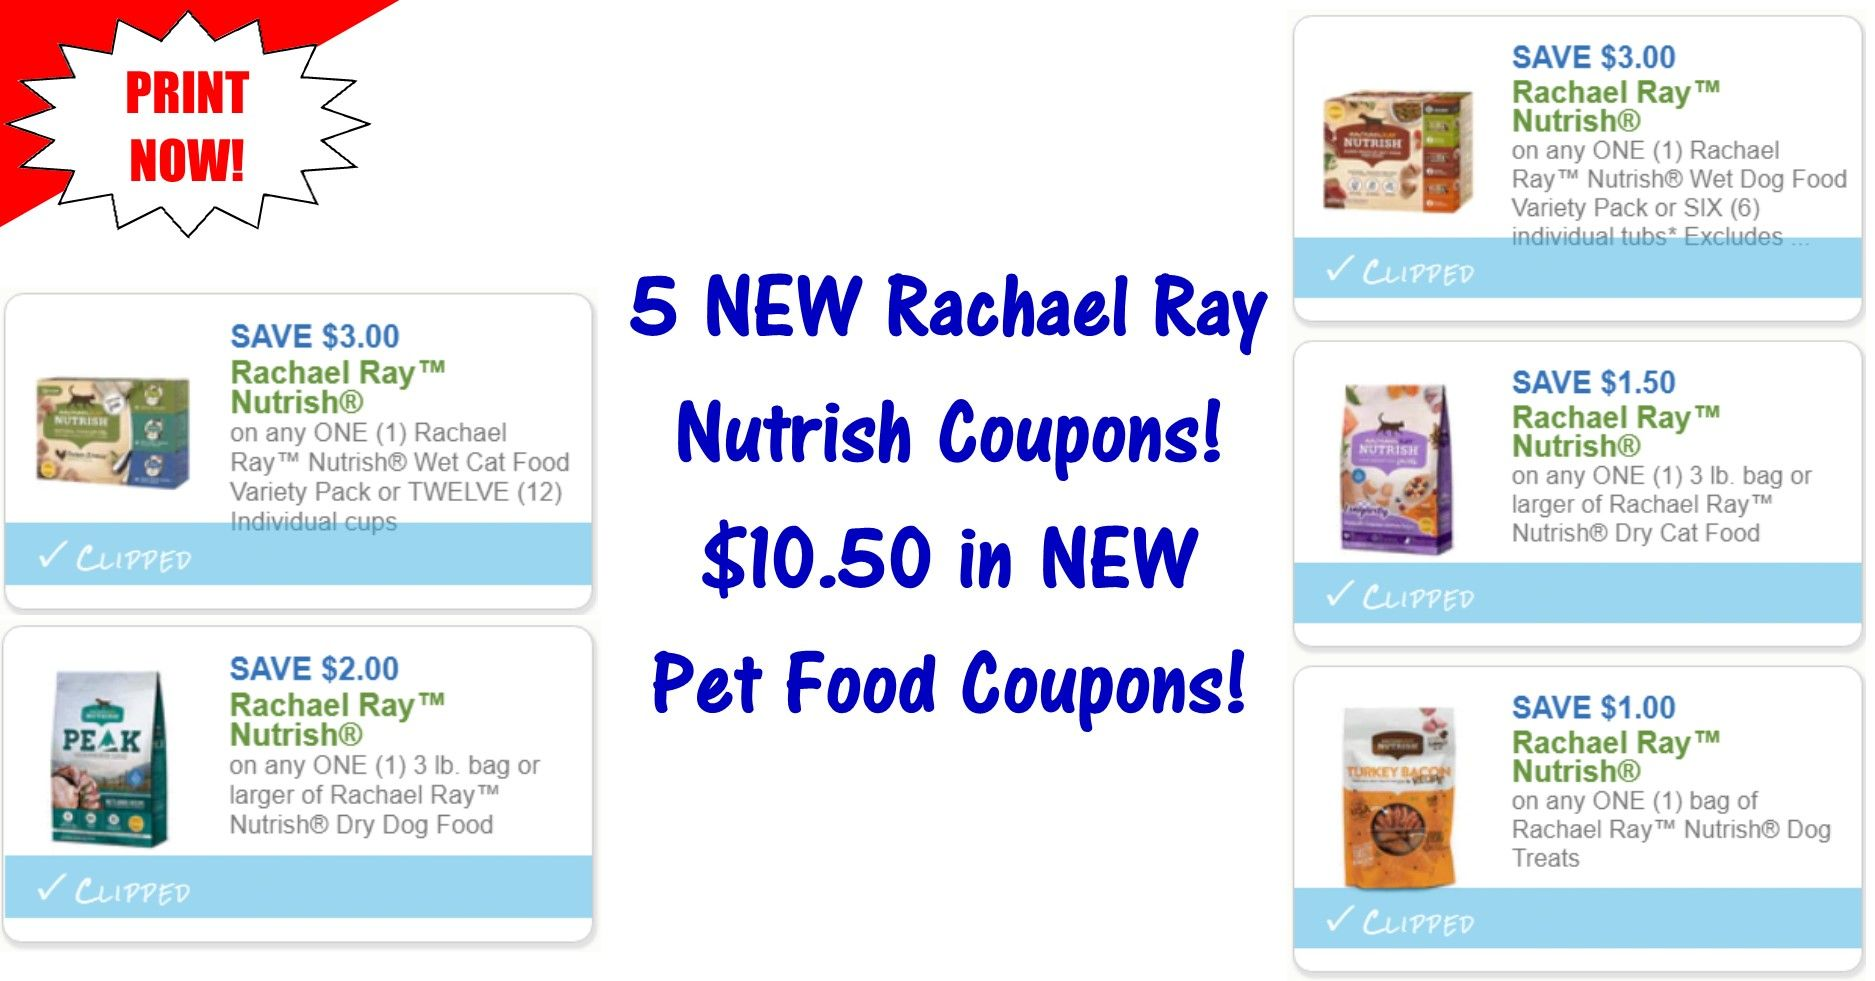 5 New Rachael Ray Nutrish Printable Coupons 10 50 In New